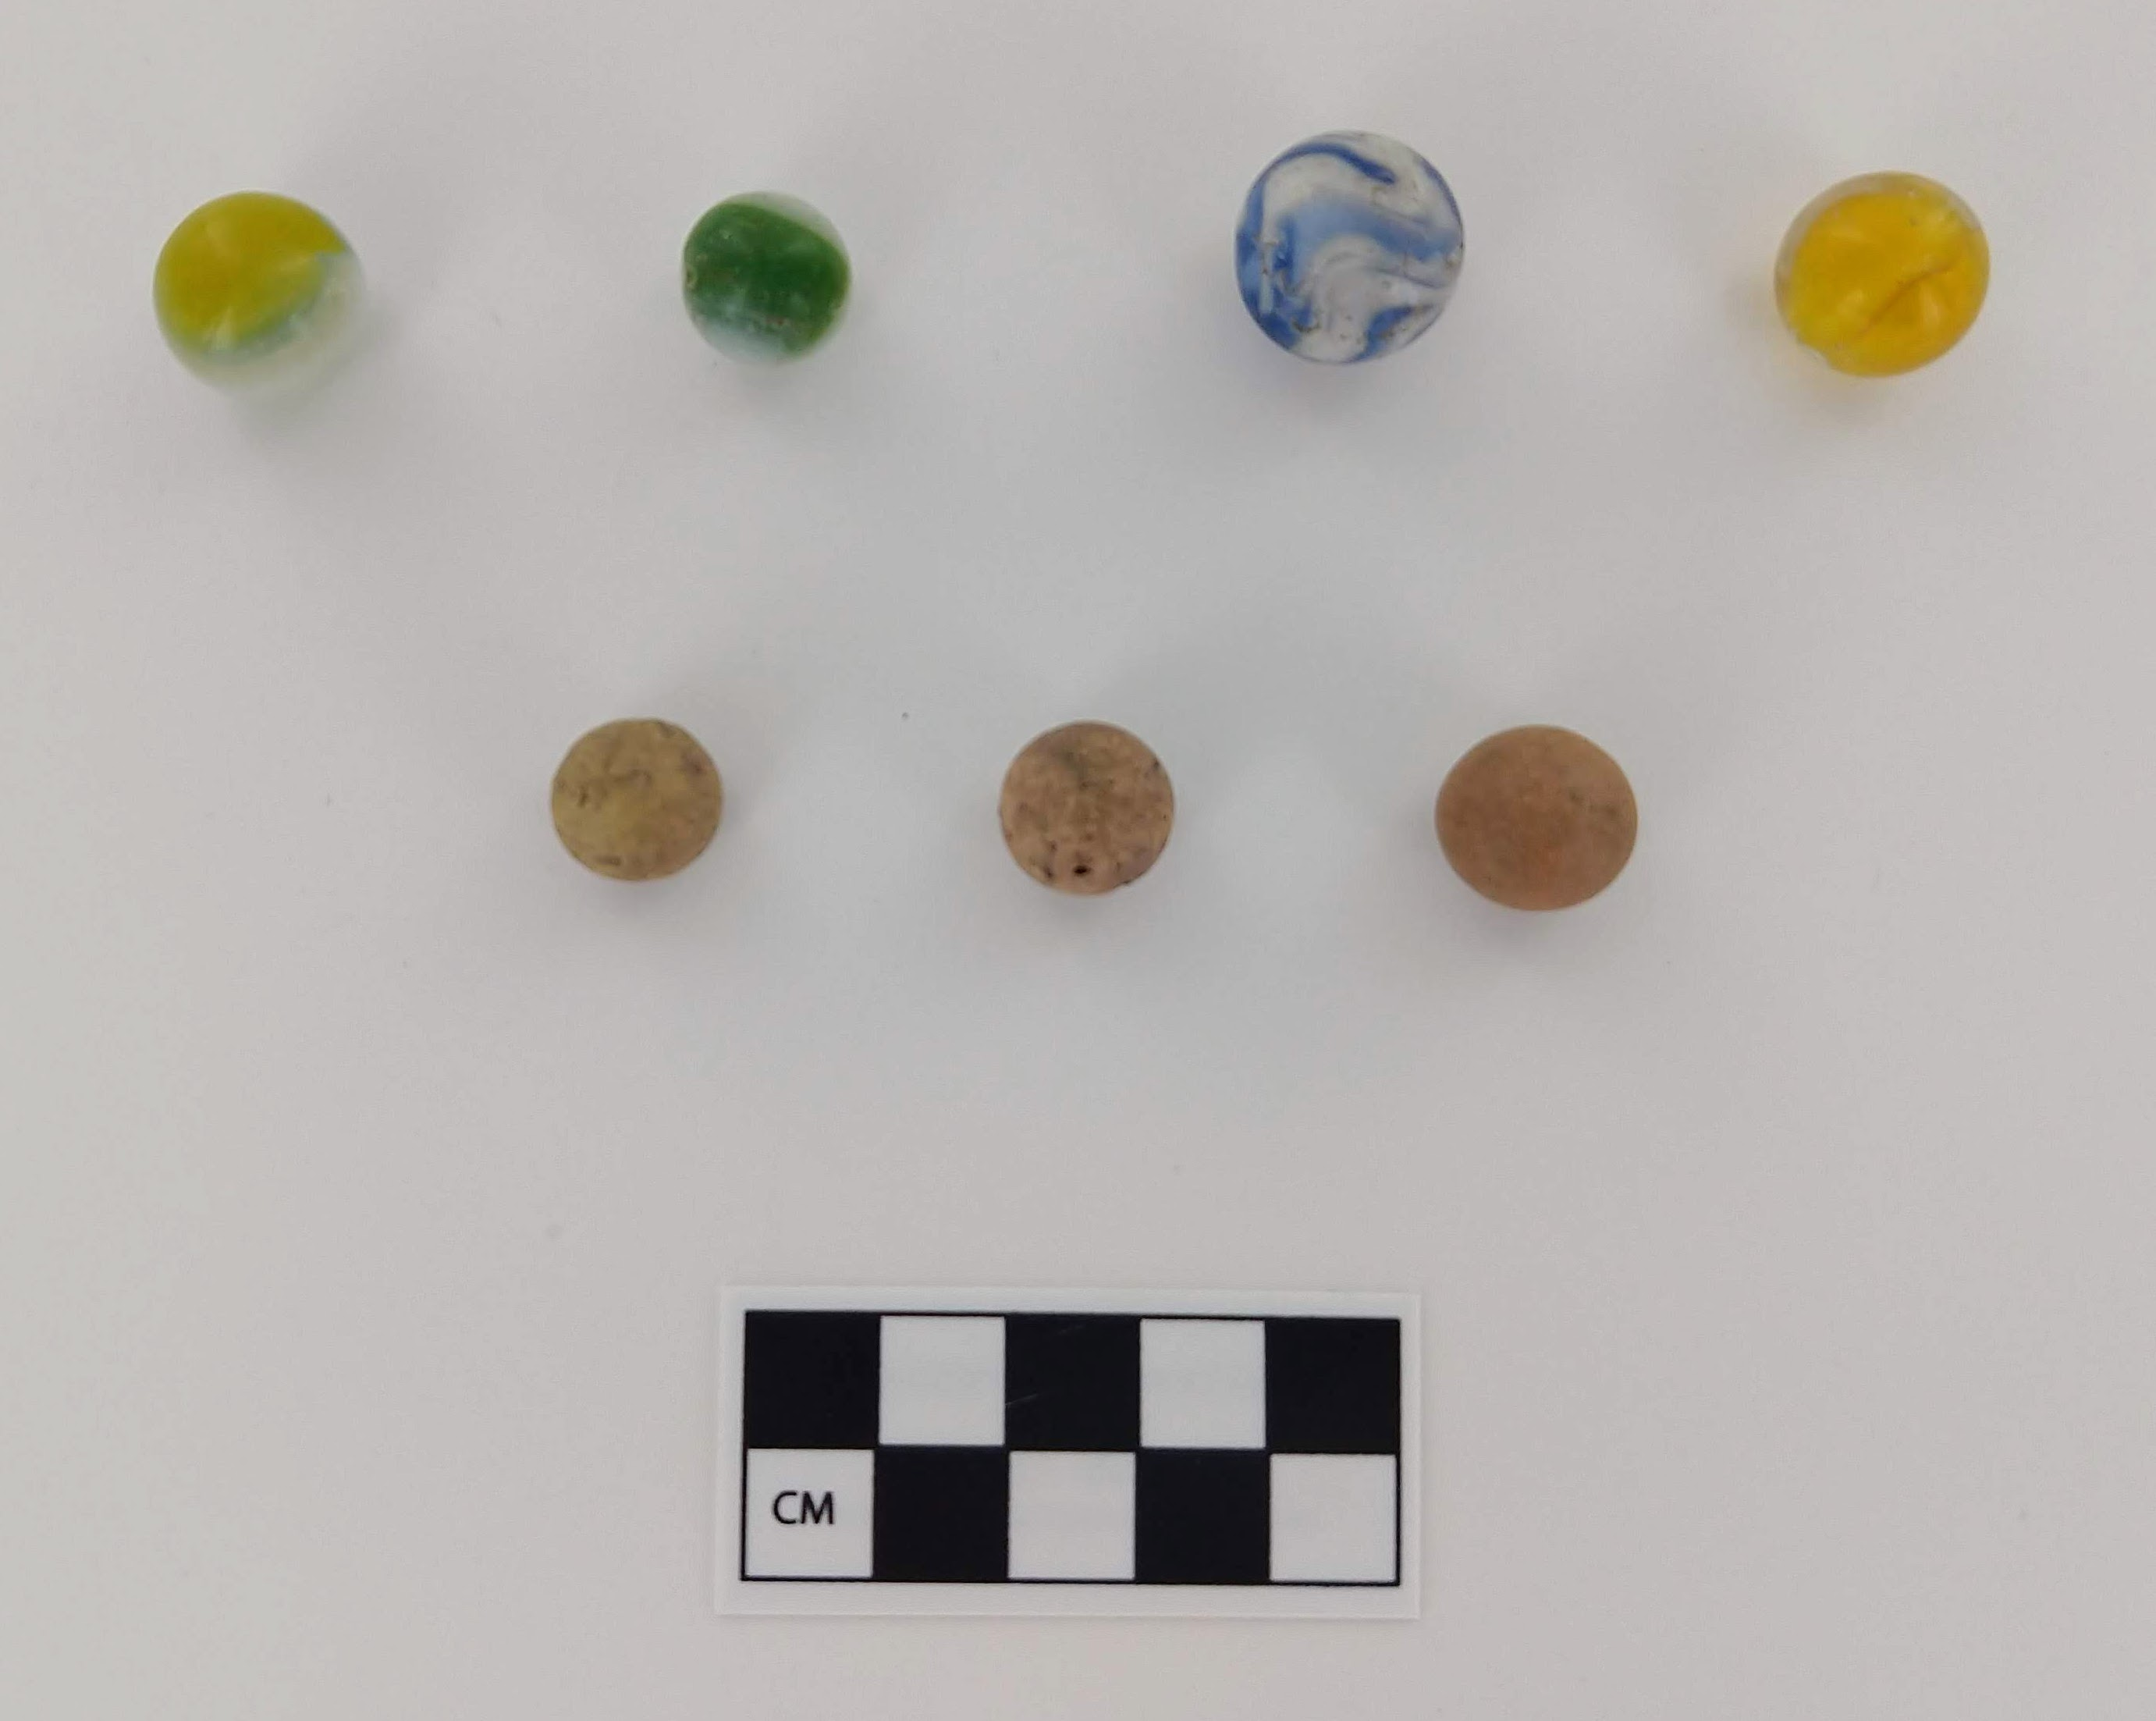 Clay and glass marbles recovered during the Turner House excavations.